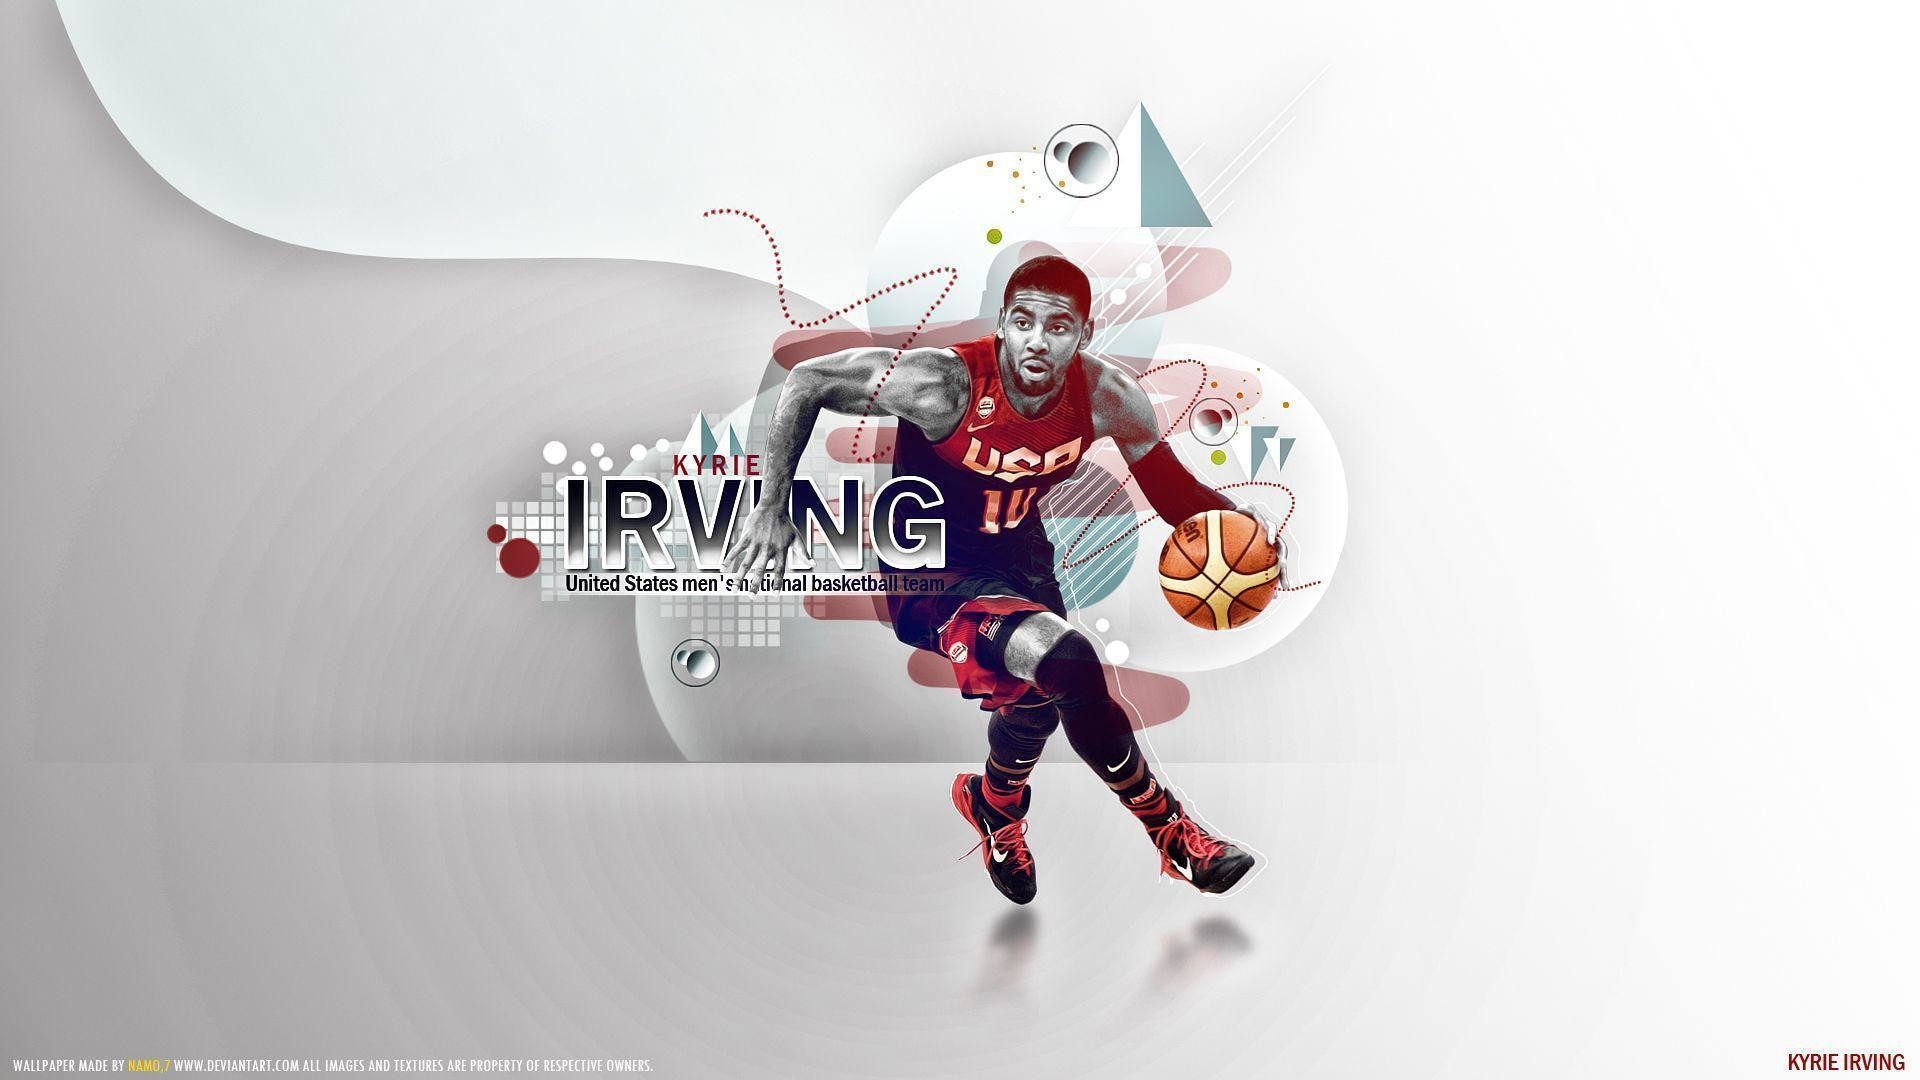 1920x1080 Kyrie Irving Wallpapers High Resolution and Quality Download